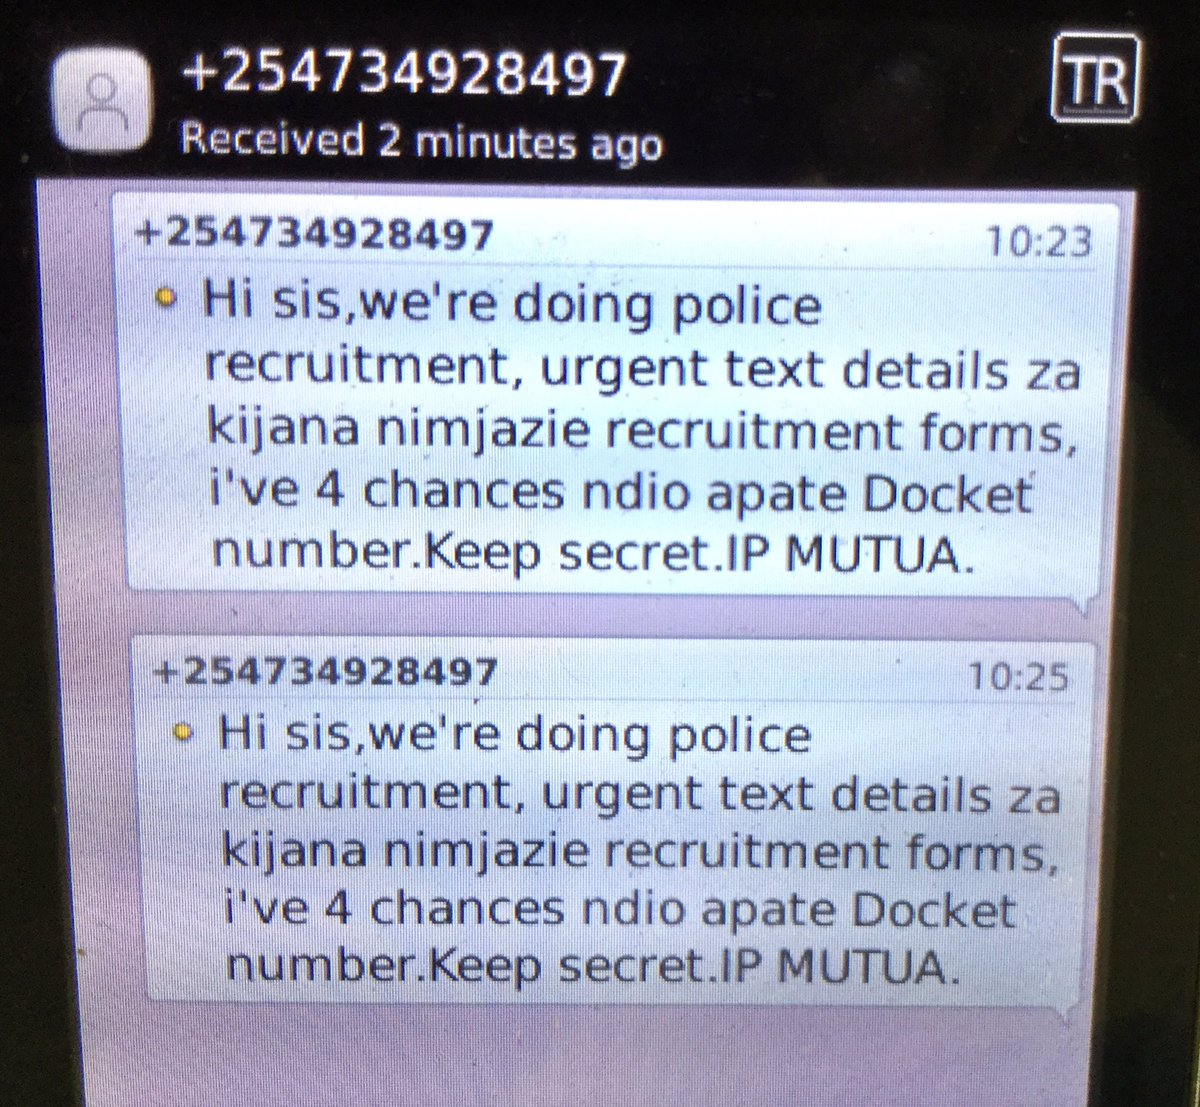 Safaricom Care On Twitter Carolinekere Hi Kindly Forward The Numbers Via Sms To 333 For Free For Our Fraud Team To Investigate Further Also Report The Cont